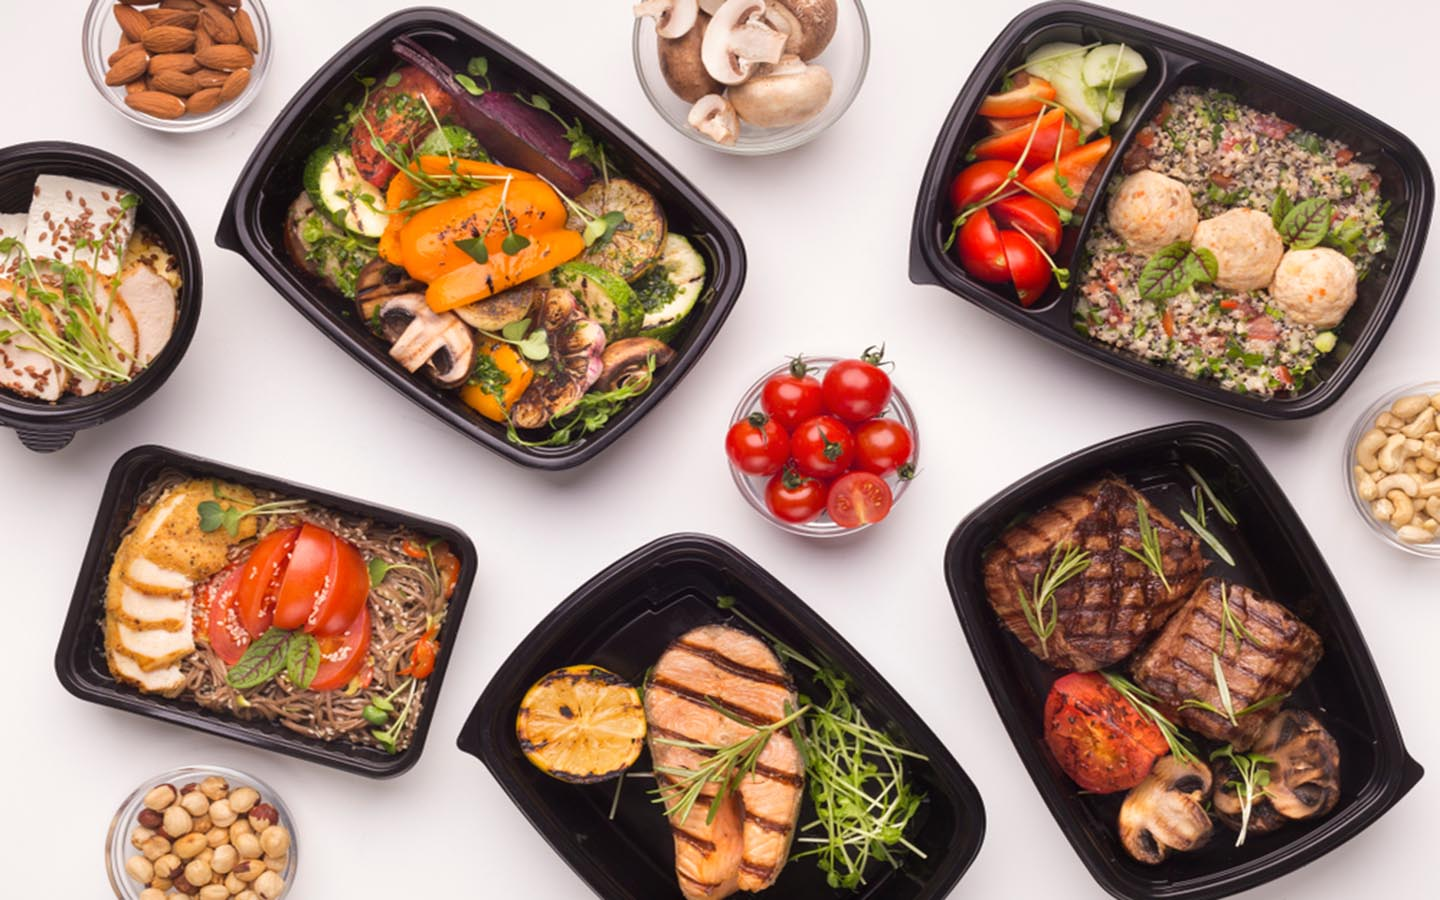 Ready made meals in Dubai made my experts